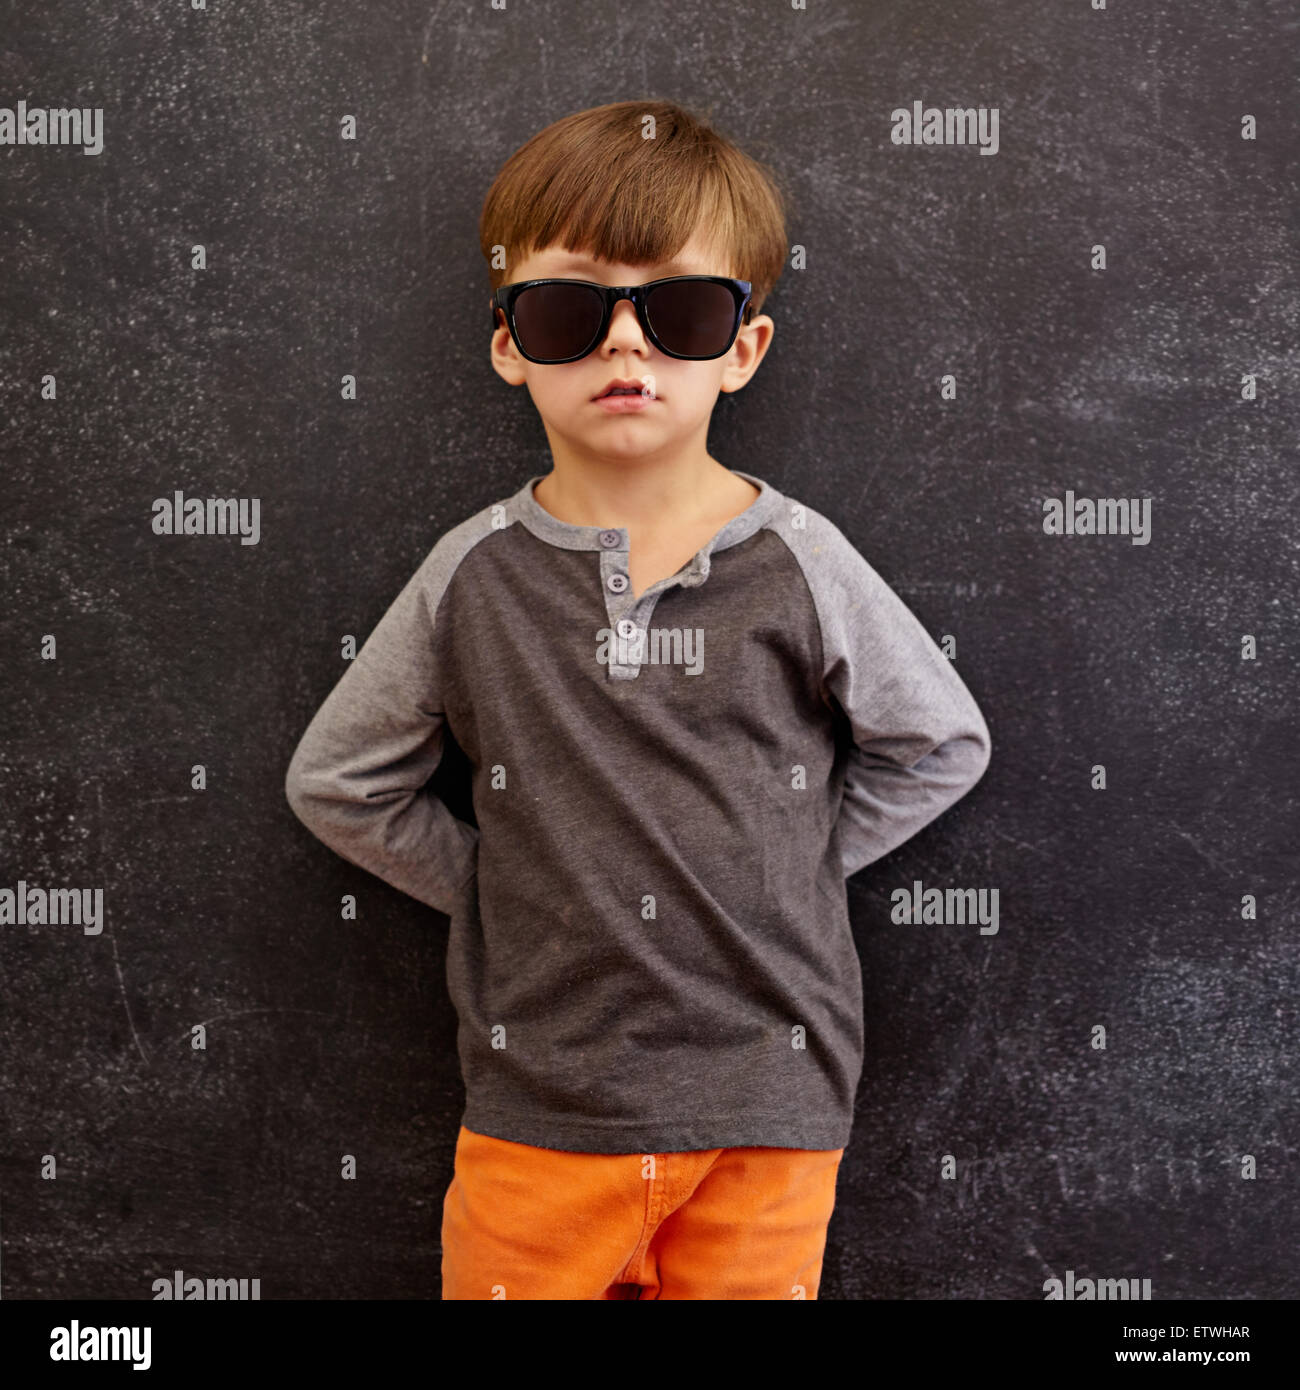 Portrait of innocent little kid wearing sunglasses. Little boy leaning on a blackboard. Square composition. - Stock Image